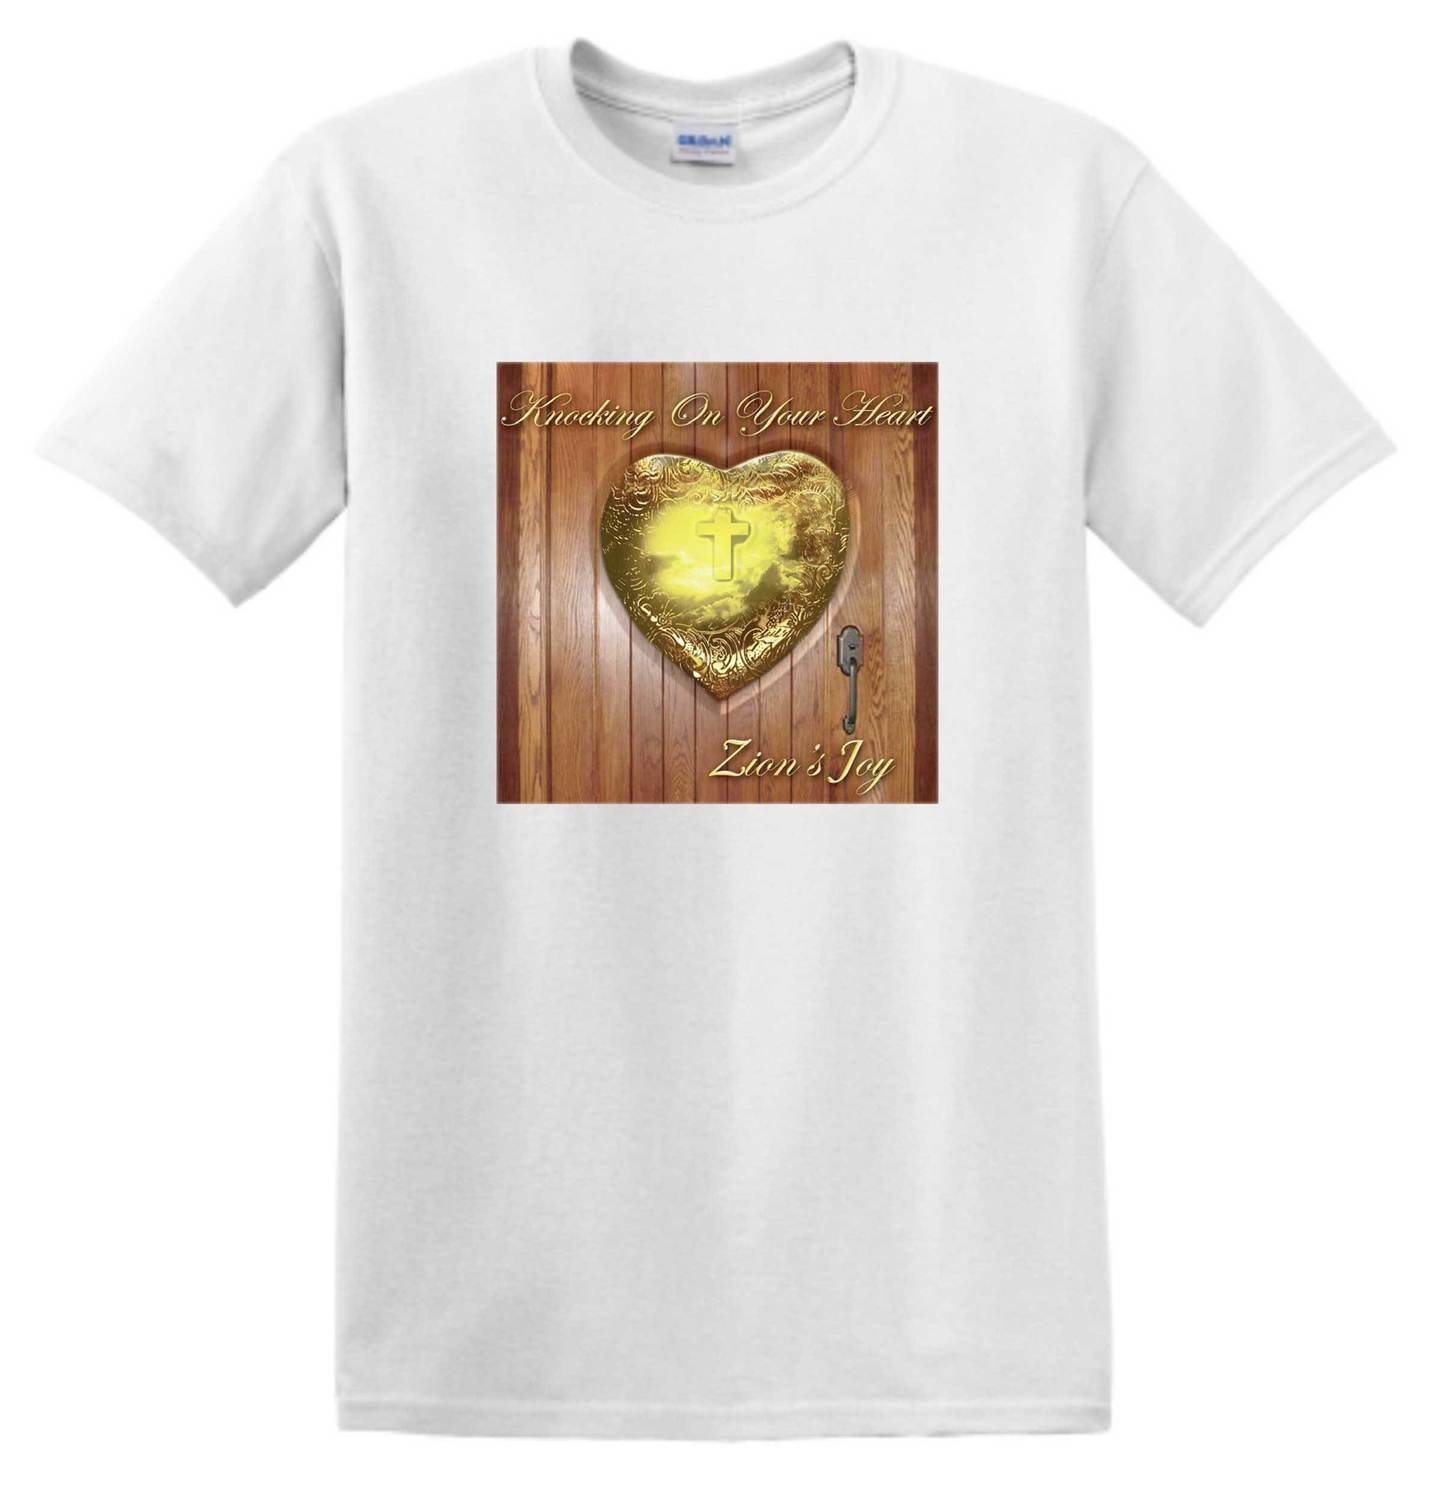 Knocking On Your Heart T-Shirt (White)